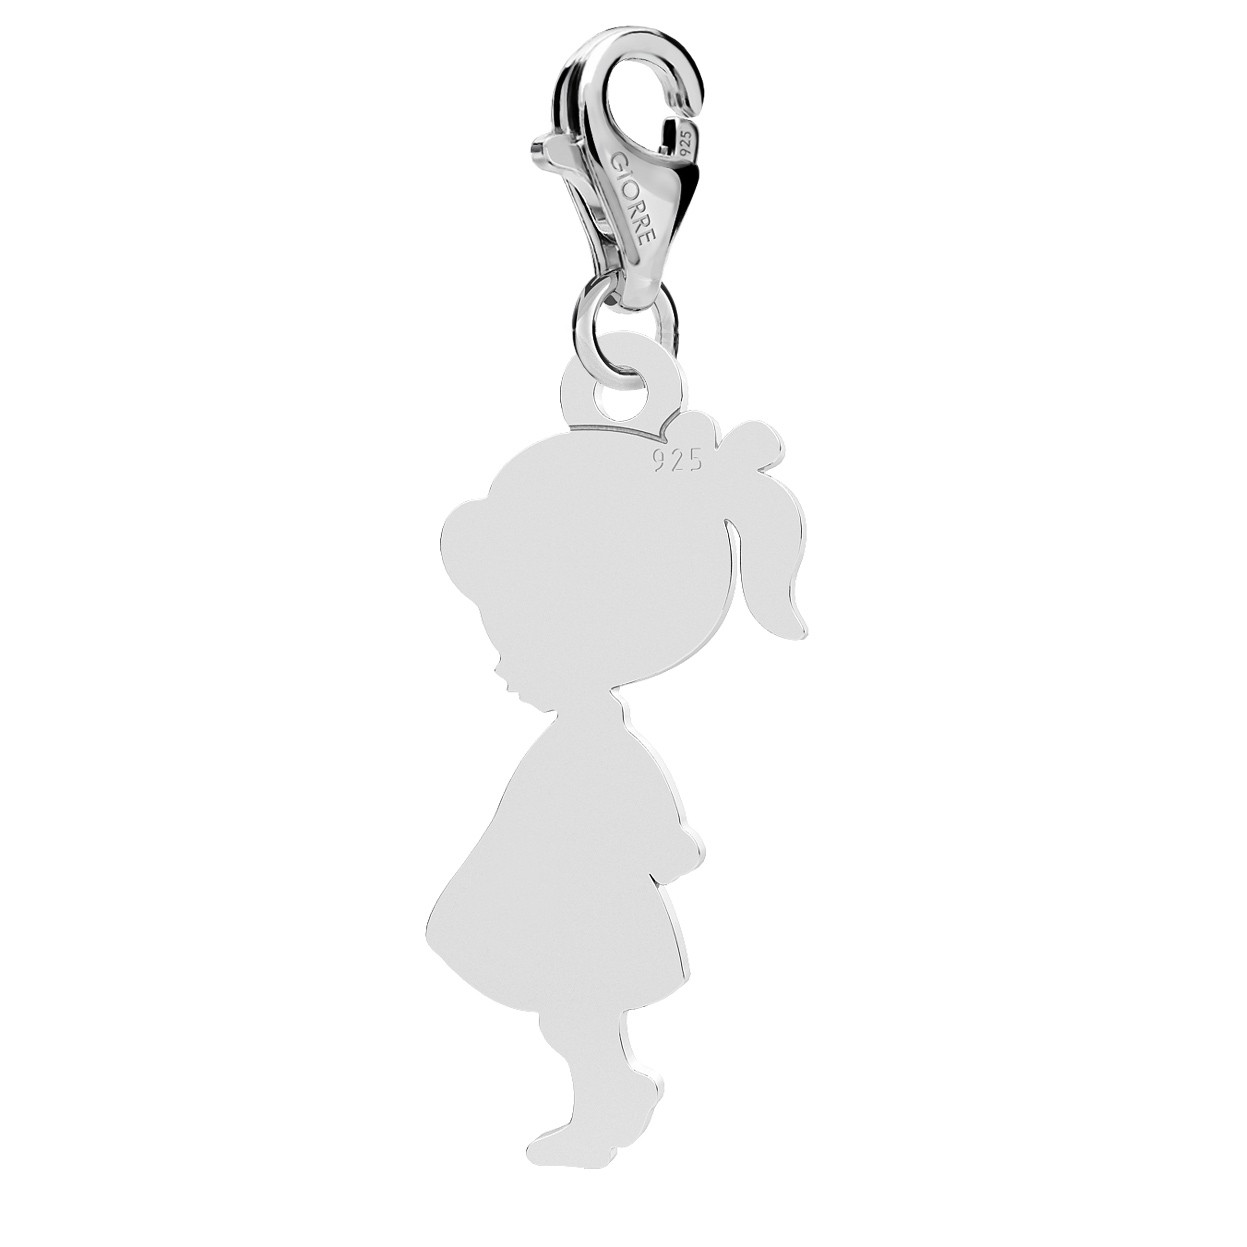 BOY CHARMS WITH ENGRAVING, STERLING SILVER 925